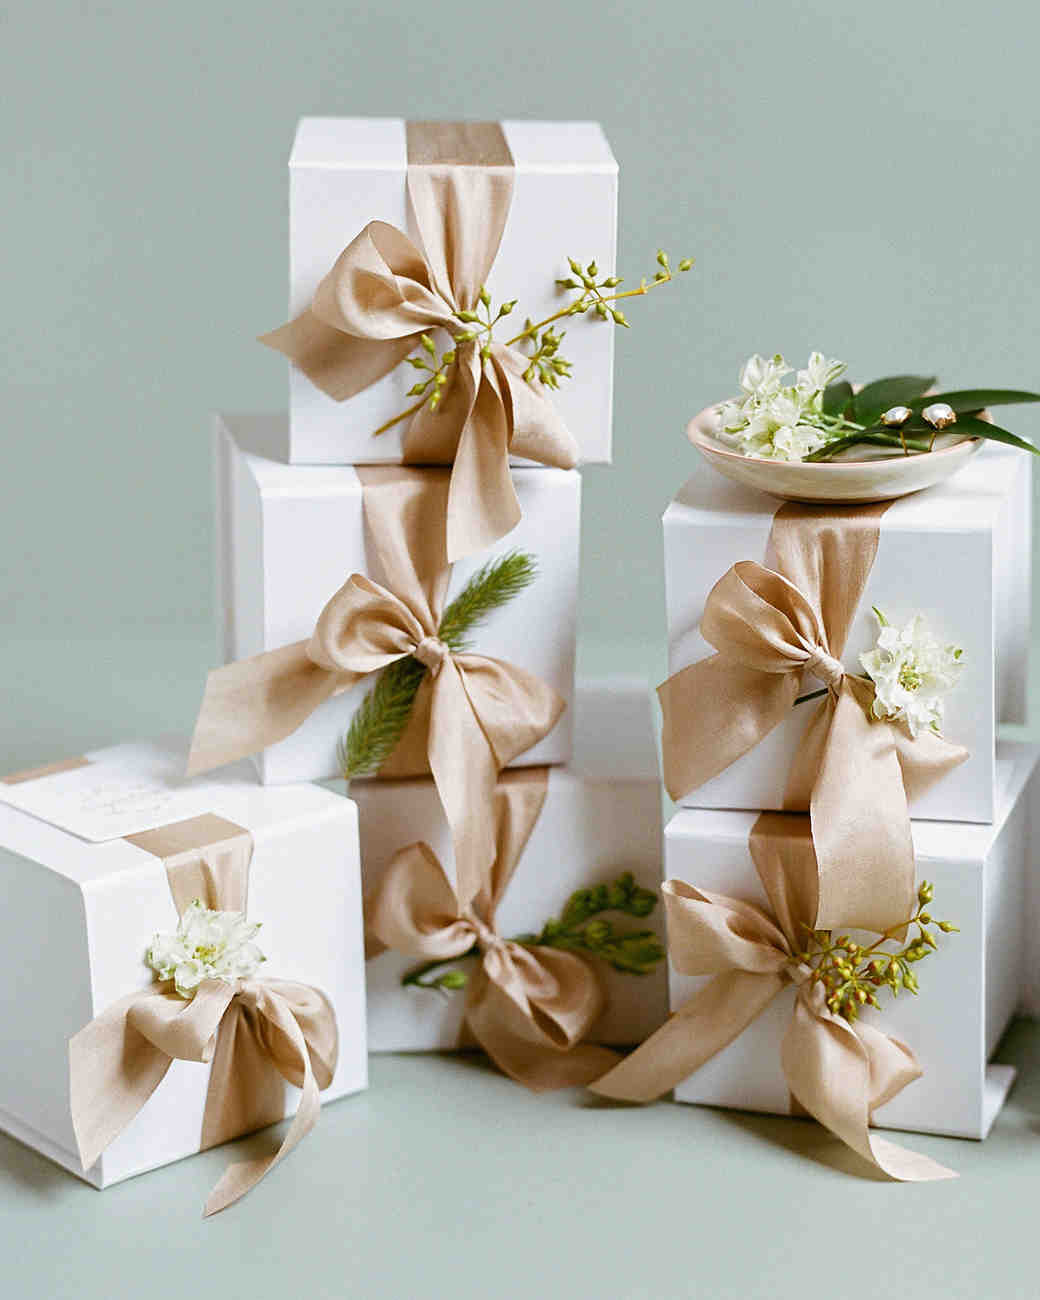 Best ideas about Wedding Favor Gift Ideas . Save or Pin 34 Festive Fall Wedding Favor Ideas Now.